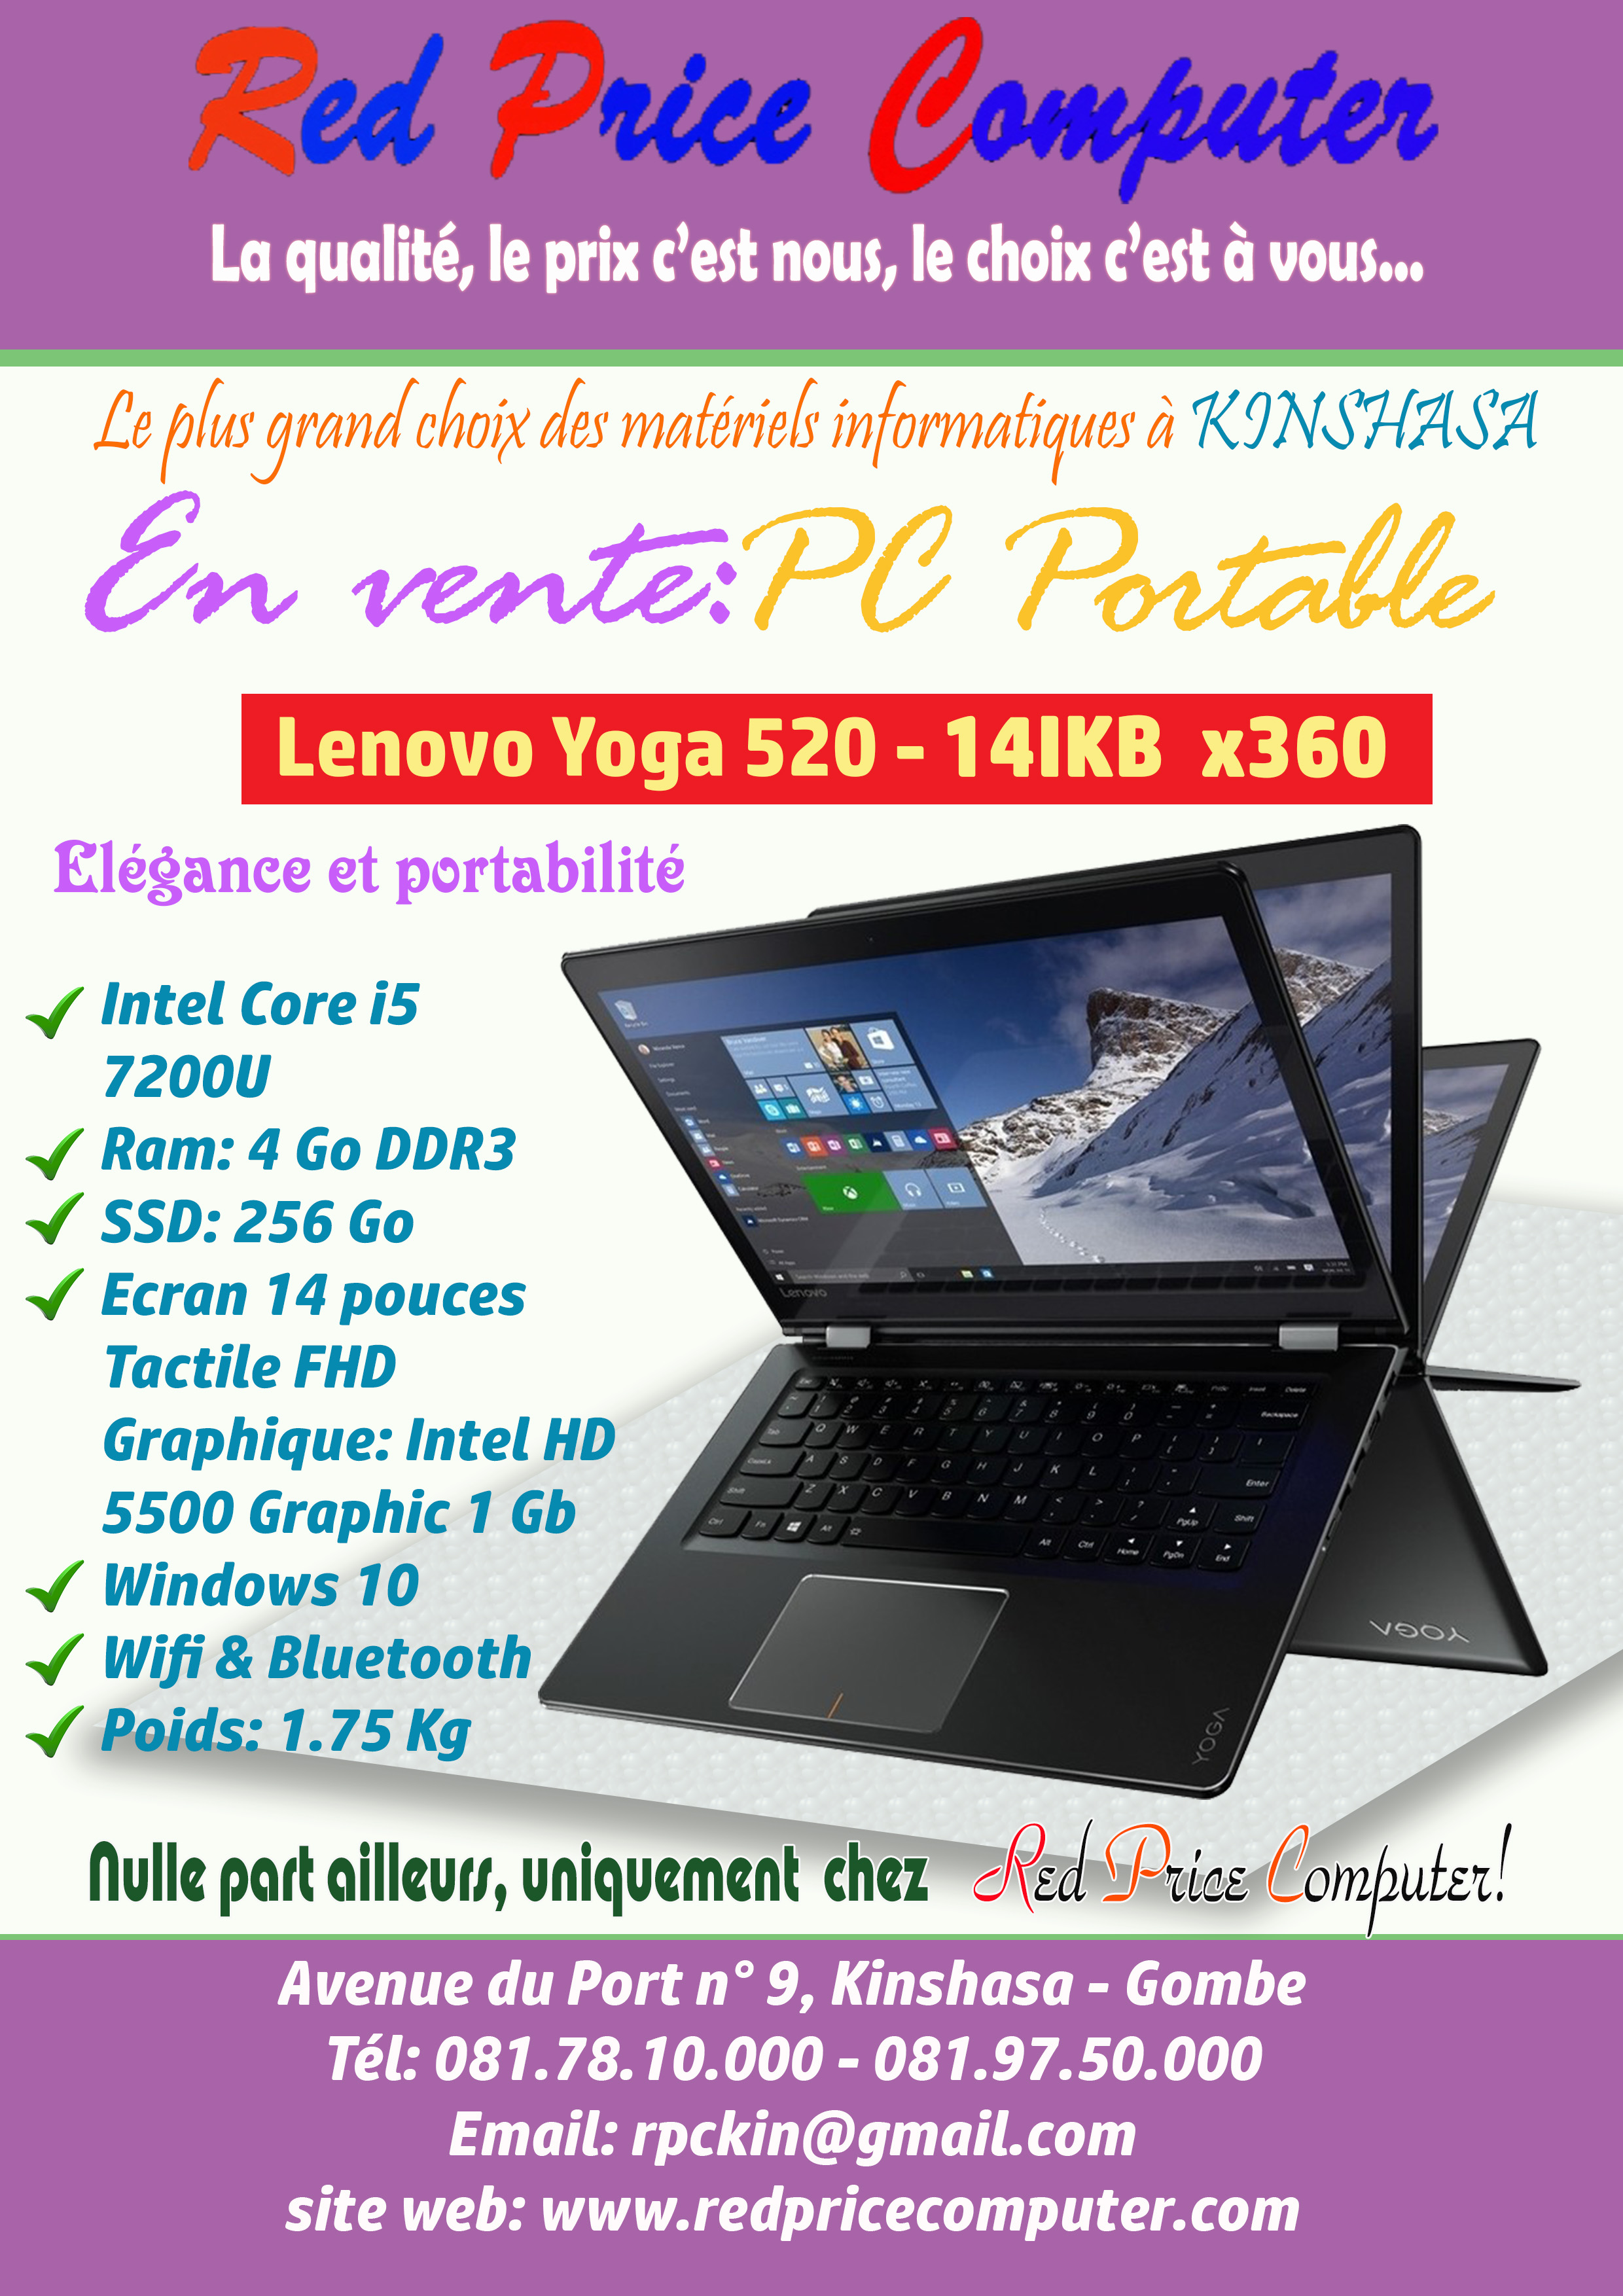 Vente Pc Portable Red Price Computer En Vente Ordinateur Portable Lenovo Yoga 520